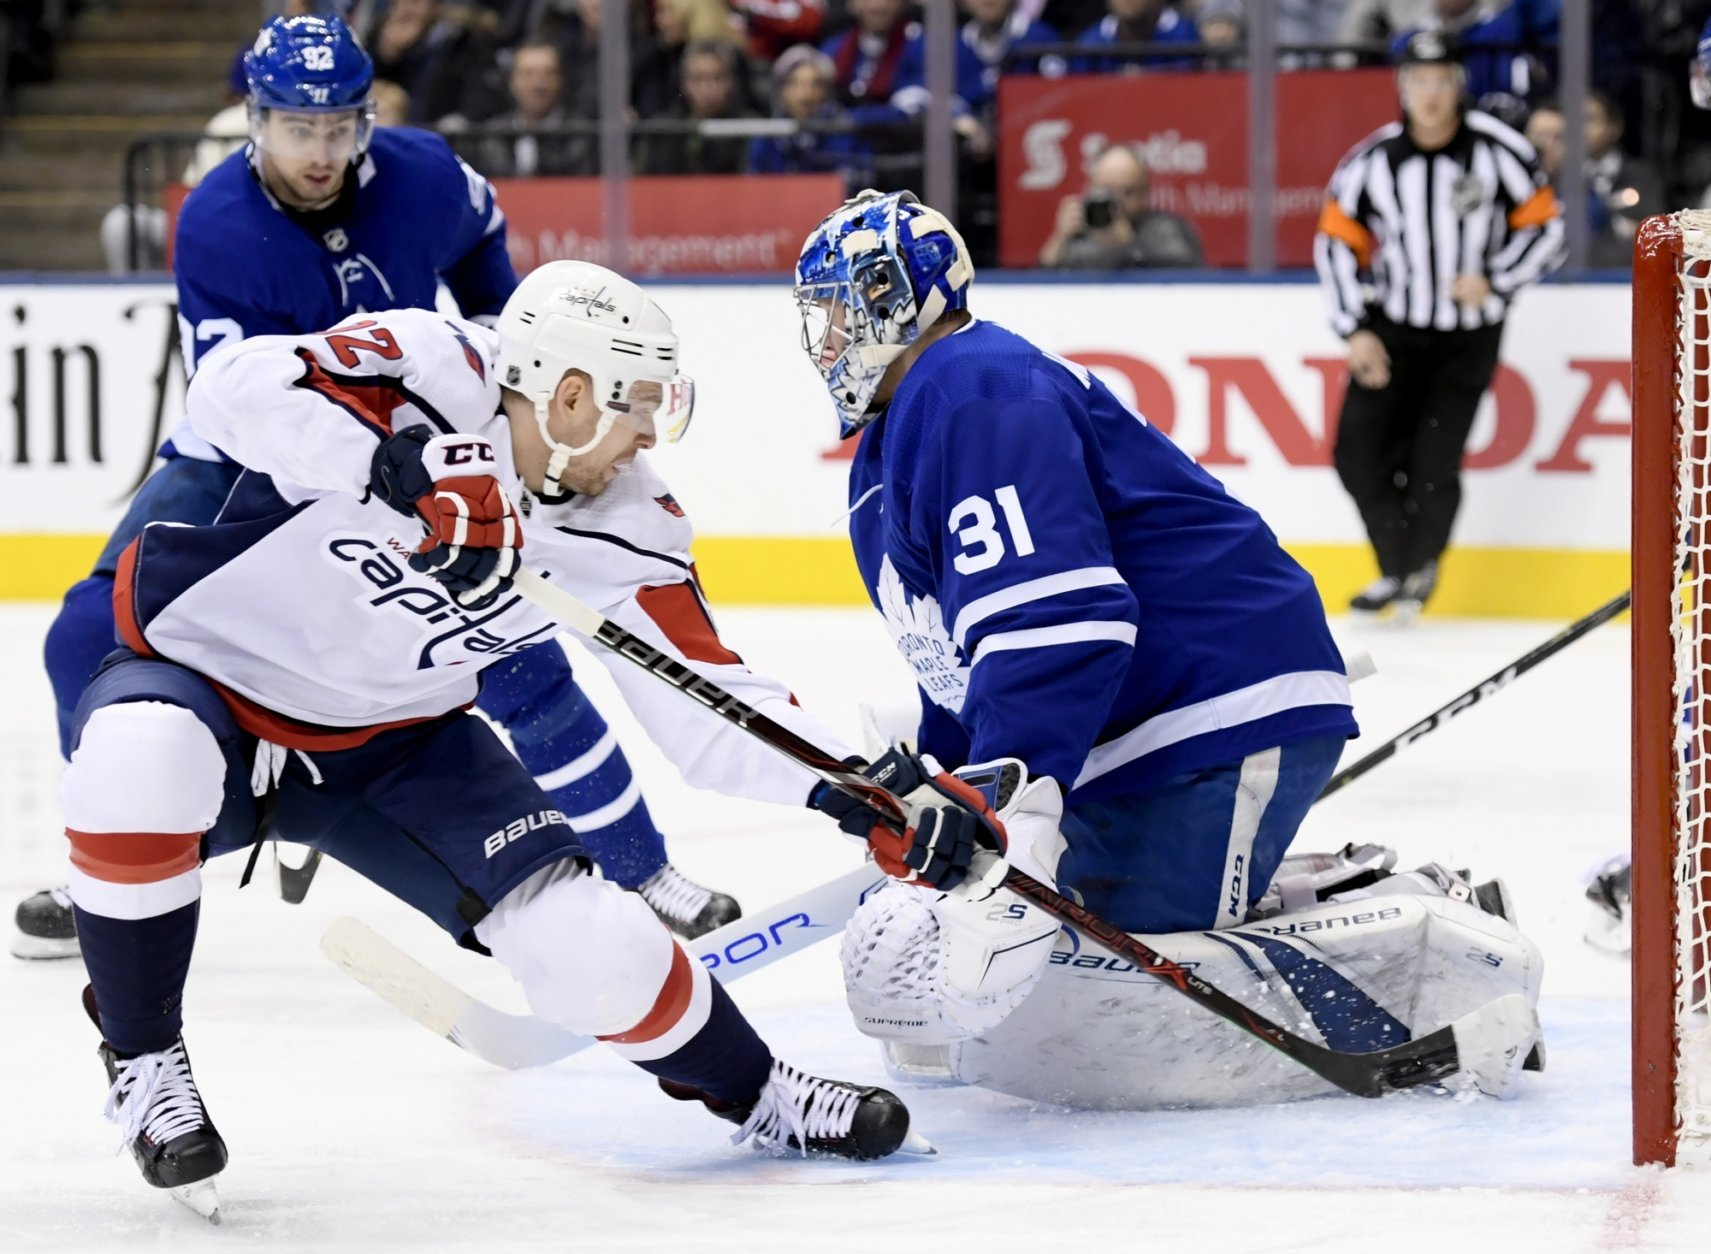 Washington Capitals center Evgeny Kuznetsov (92) gets stopped by Toronto Maple Leafs goaltender Frederik Andersen (31) during the first period of an NHL hockey game, Wednesday, Jan. 23, 2019, in Toronto. (Nathan Denette/The Canadian Press via AP)